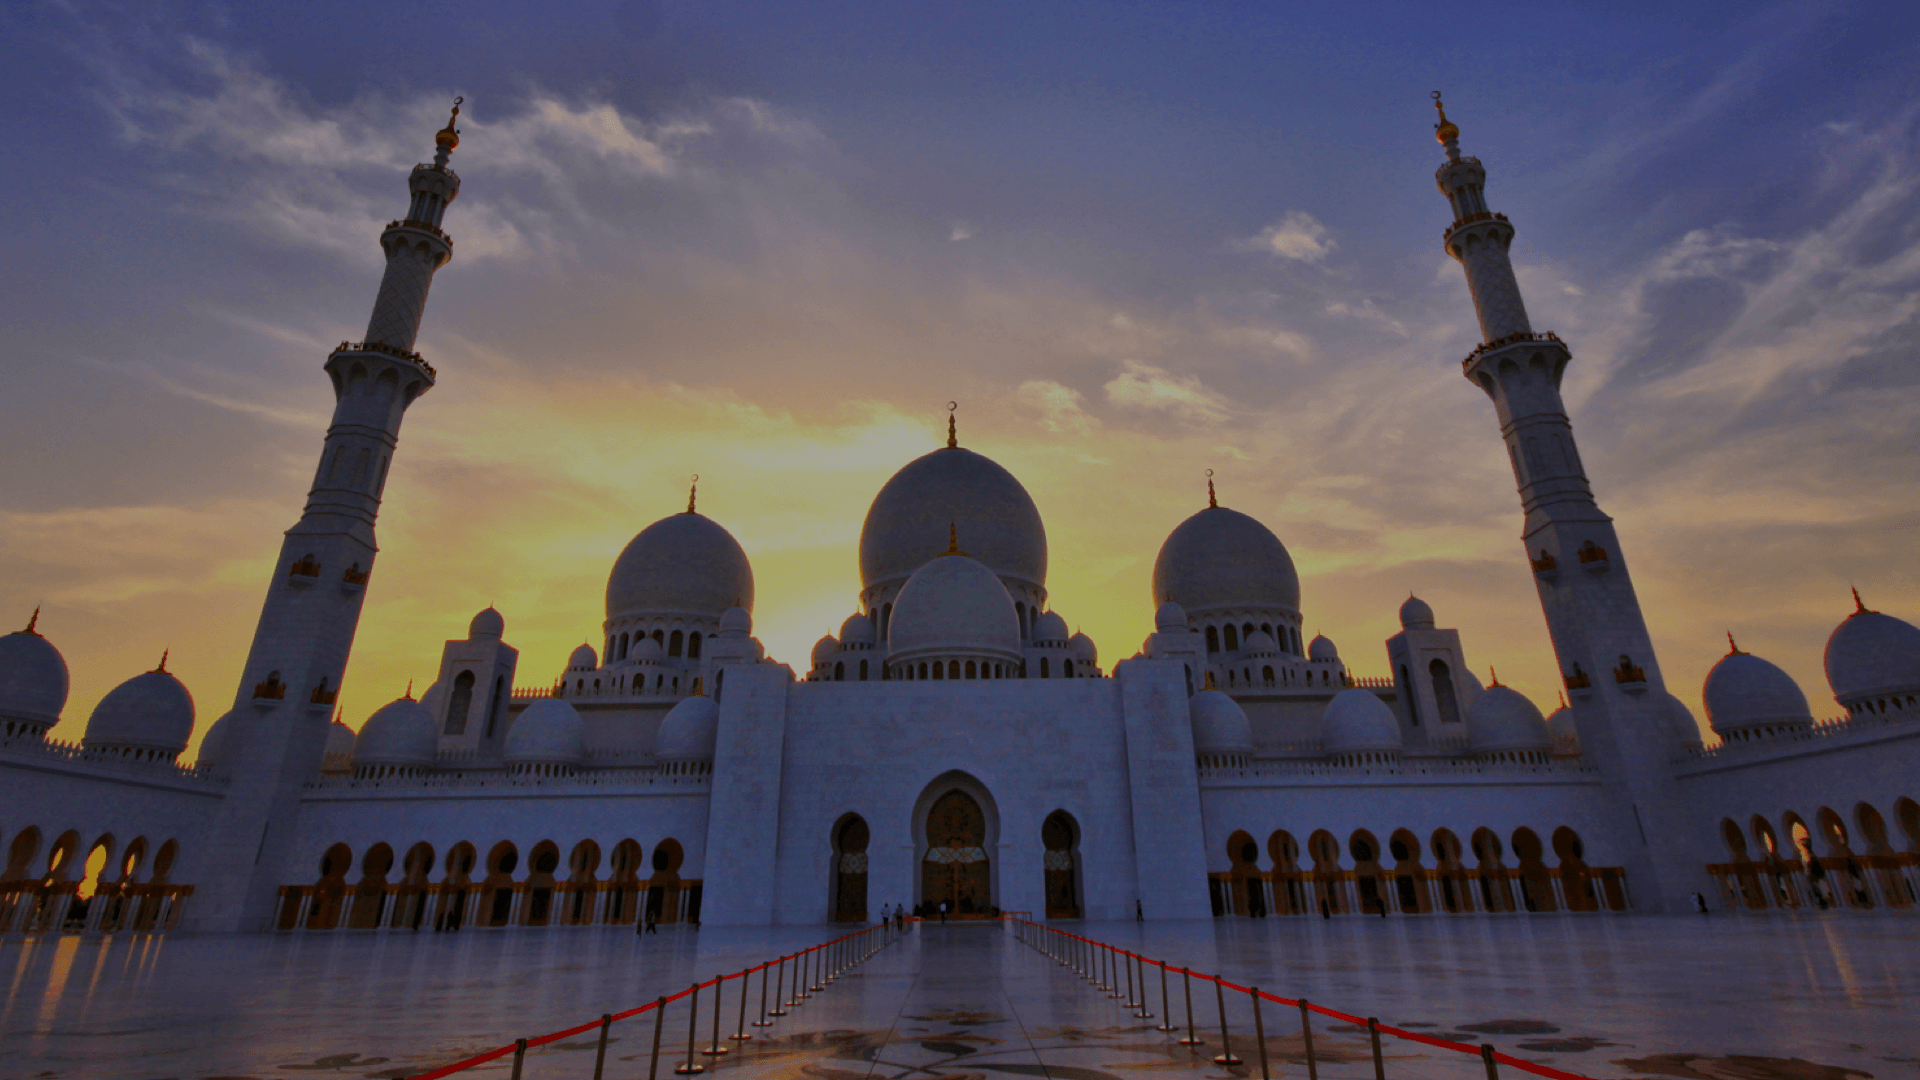 One of The Most Beautiful Mosques in The World